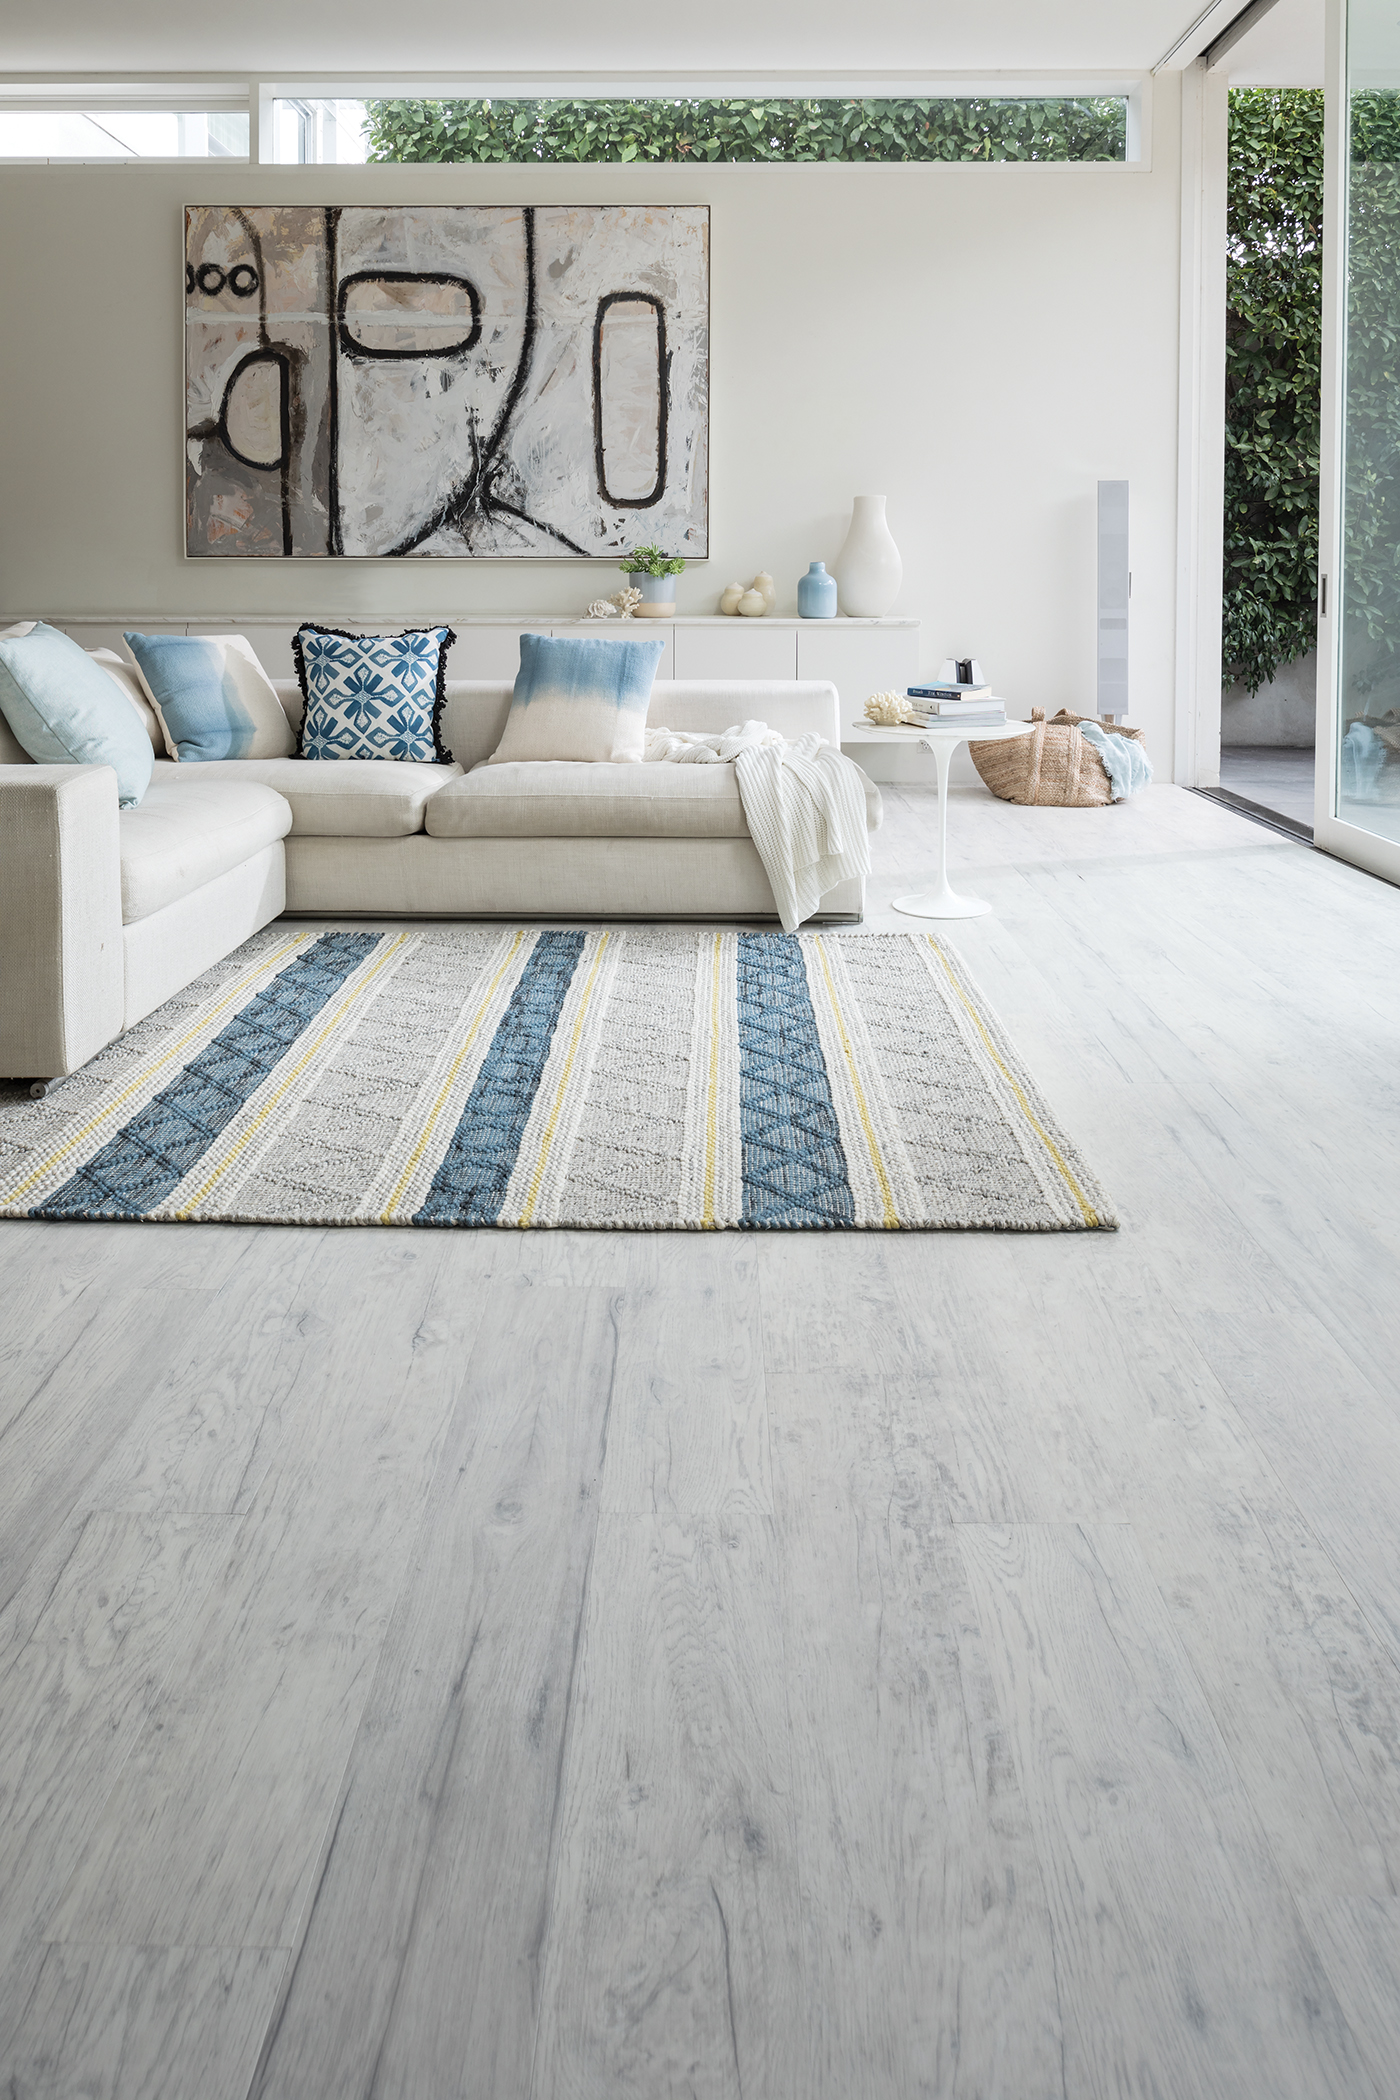 Choices Flooring Nowra South - South Nowra, NSW 2541 - (02) 4421 3833 | ShowMeLocal.com